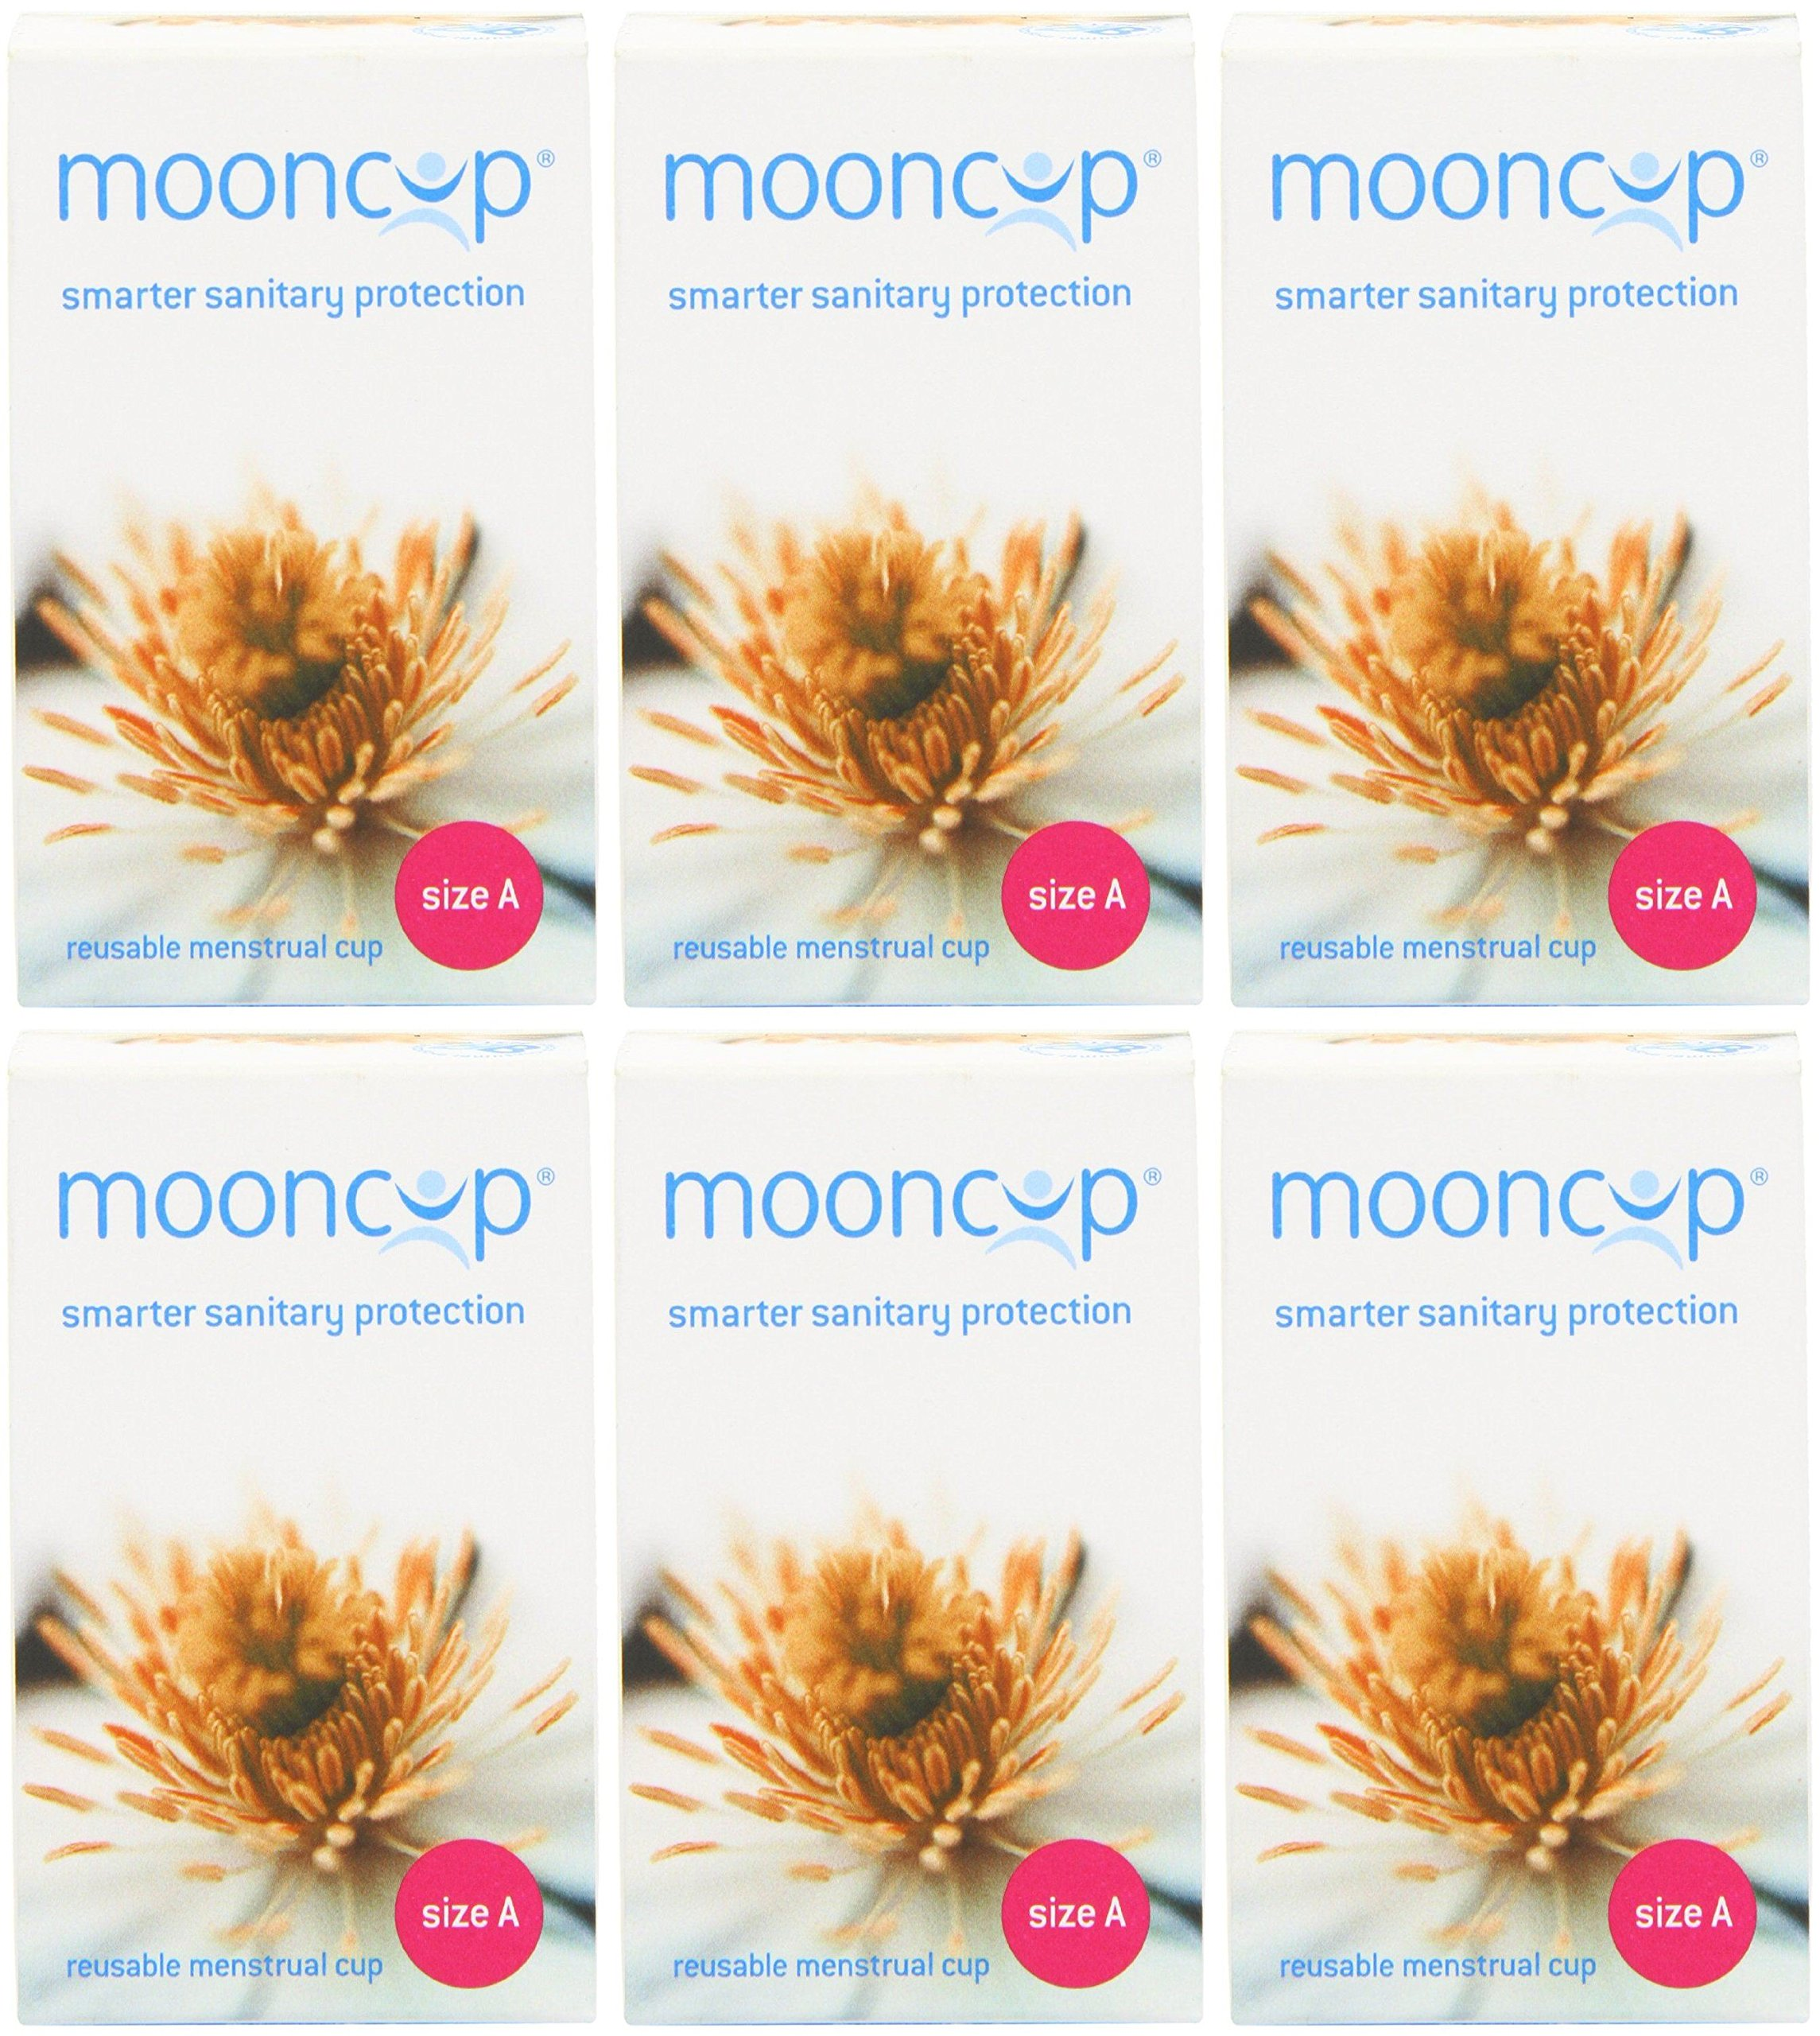 (6 PACK) - Mooncup Mooncup Size A | inleSingle | 6 PACK - SUPER SAVER - SAVE MONEY